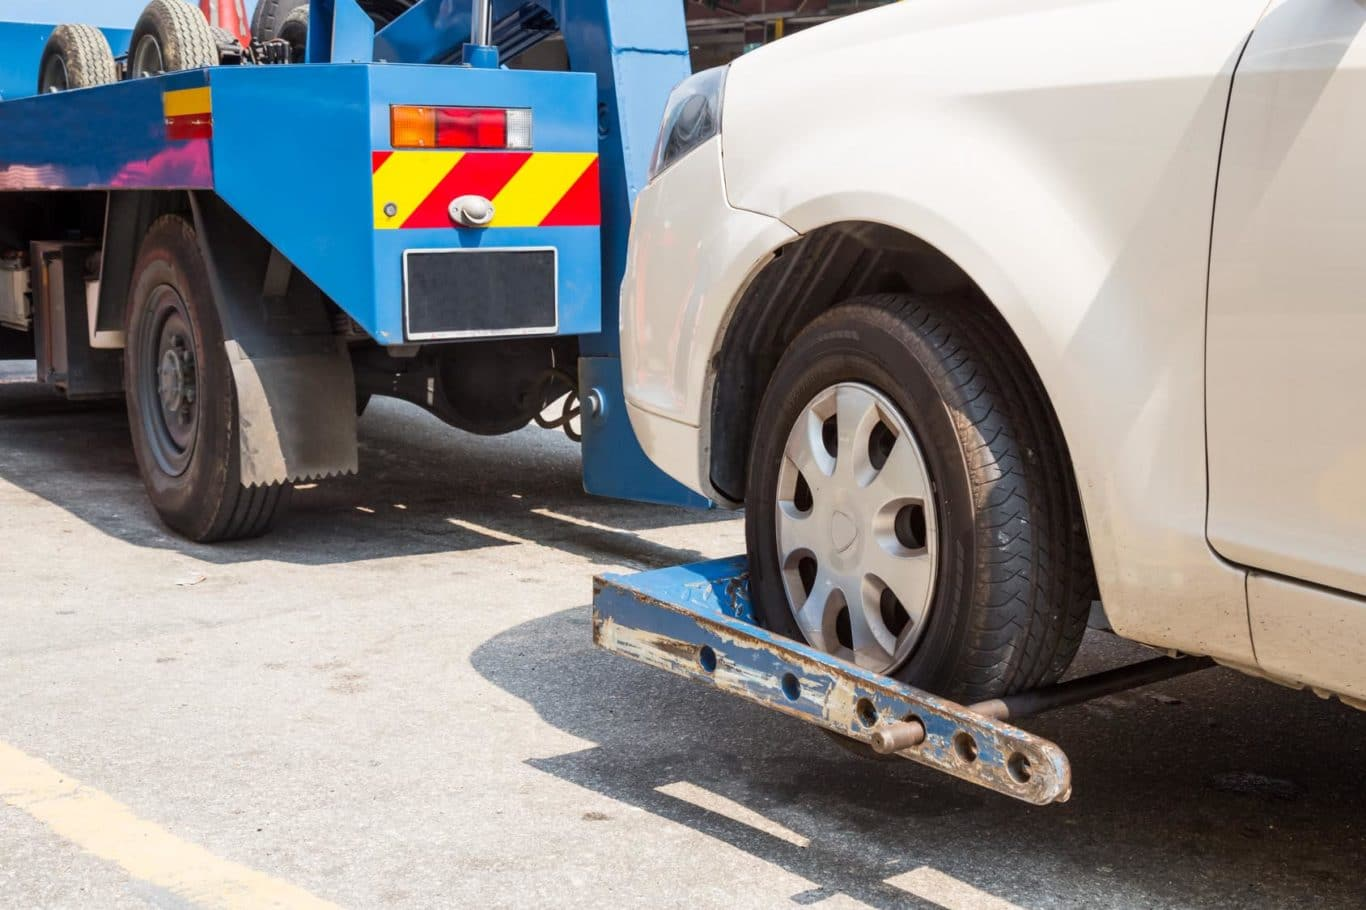 Kilbarrack expert Breakdown Recovery services